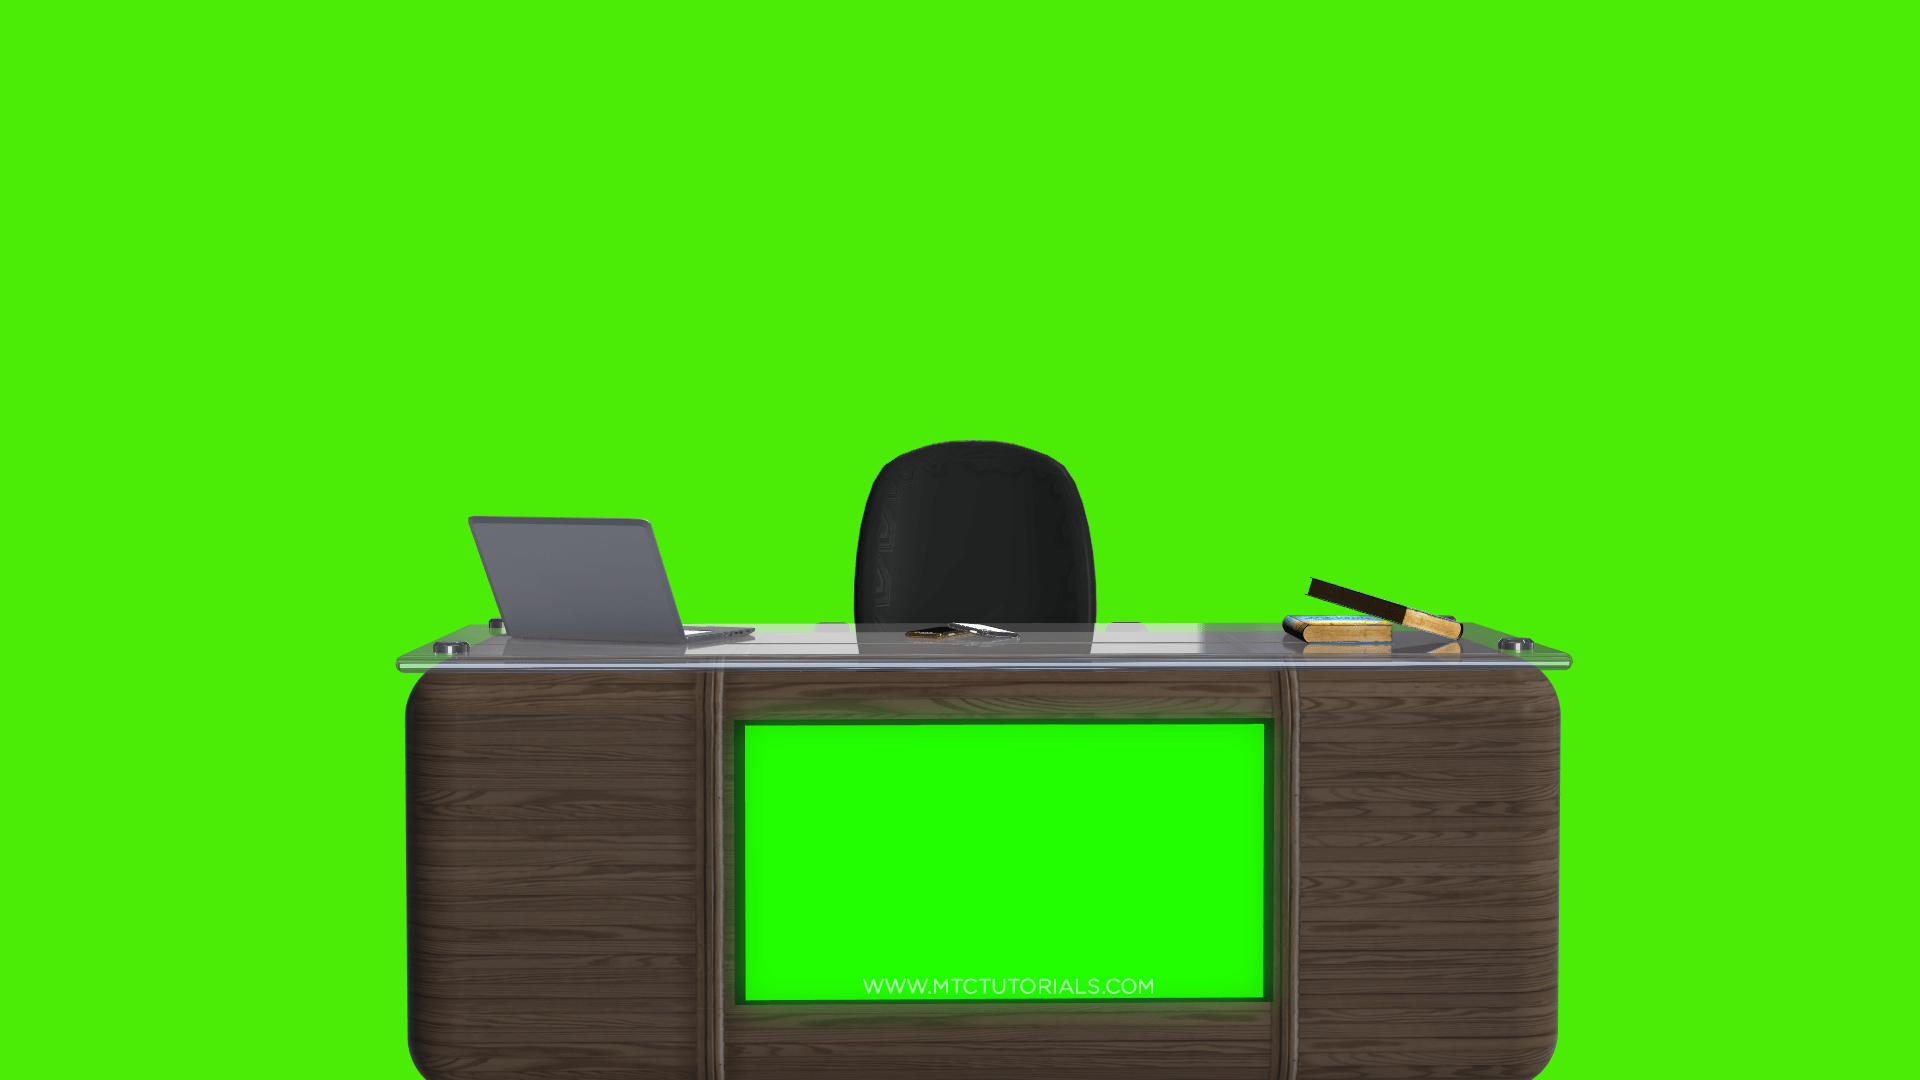 News Desk Chair Table Green Screen Transparent Wallpapers By MTC Tutorials